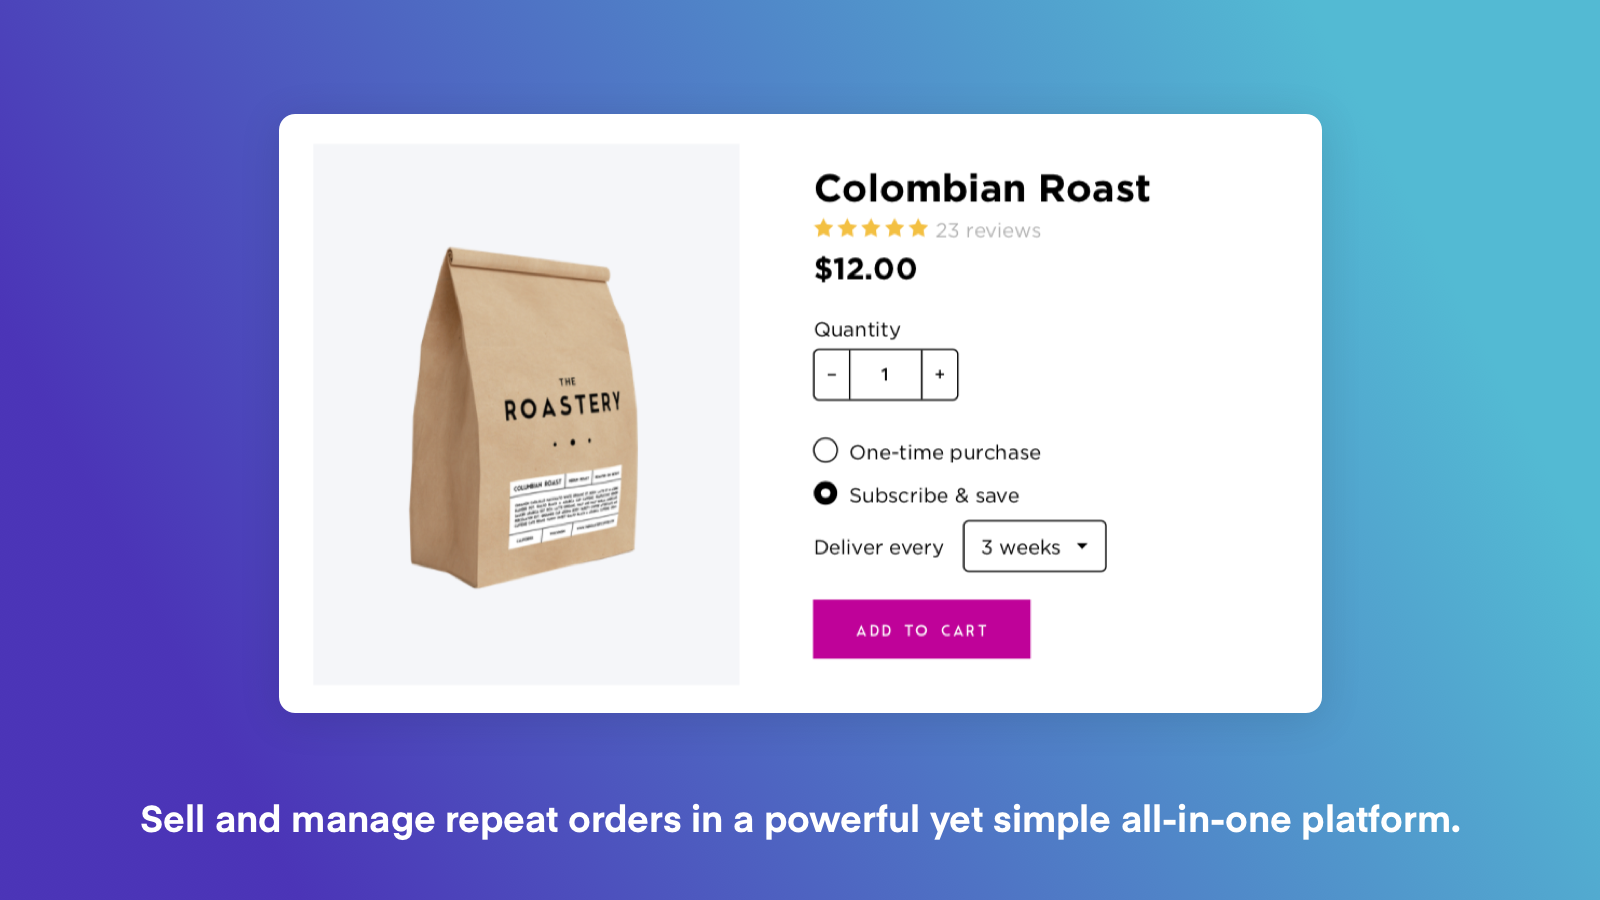 ReCharge order page with a bag of colombian roast coffee